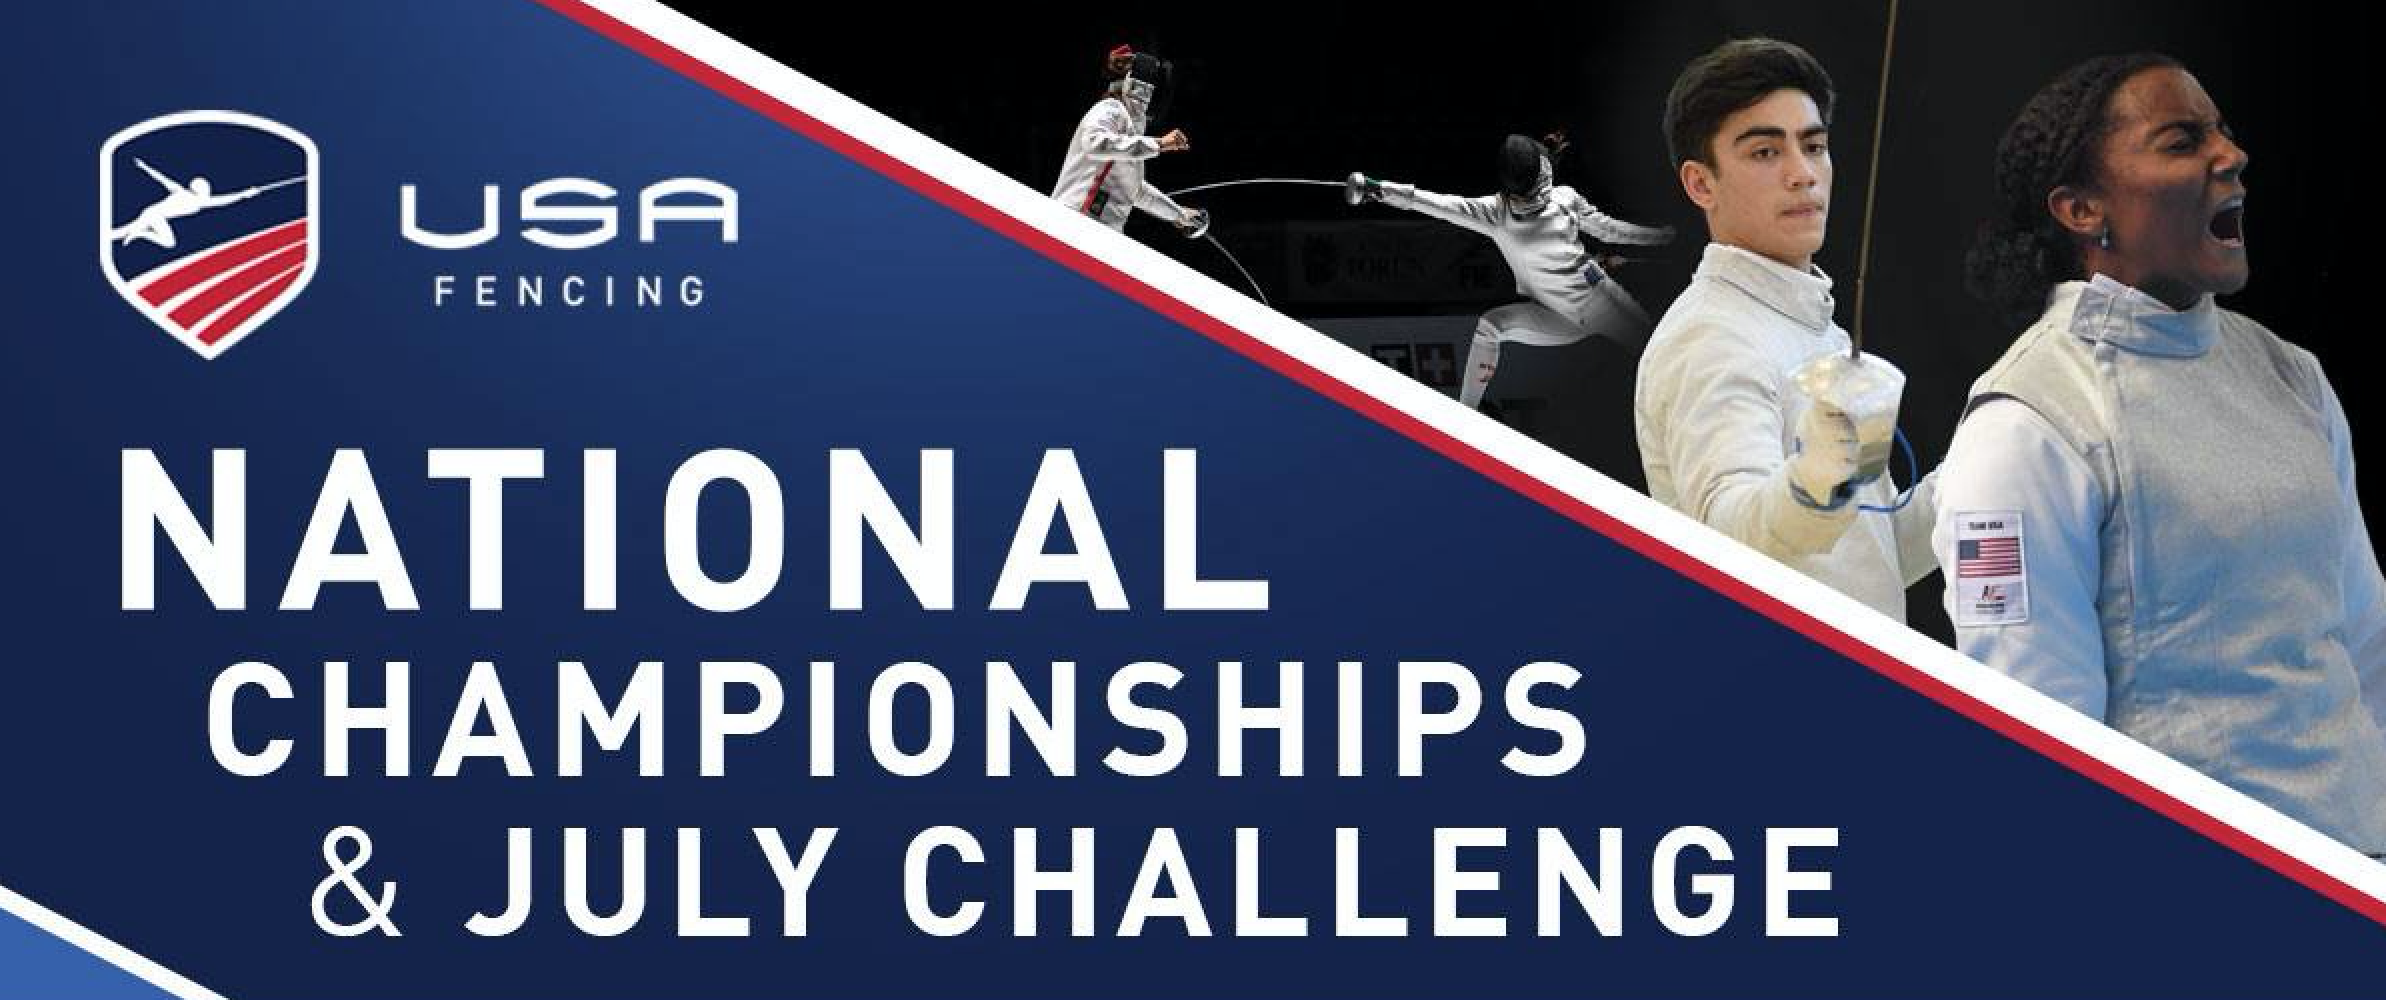 MEDAL COUNT 2019 - Unofficial Leaderboard for the USA Fencing Summer Nationals and July Challenge